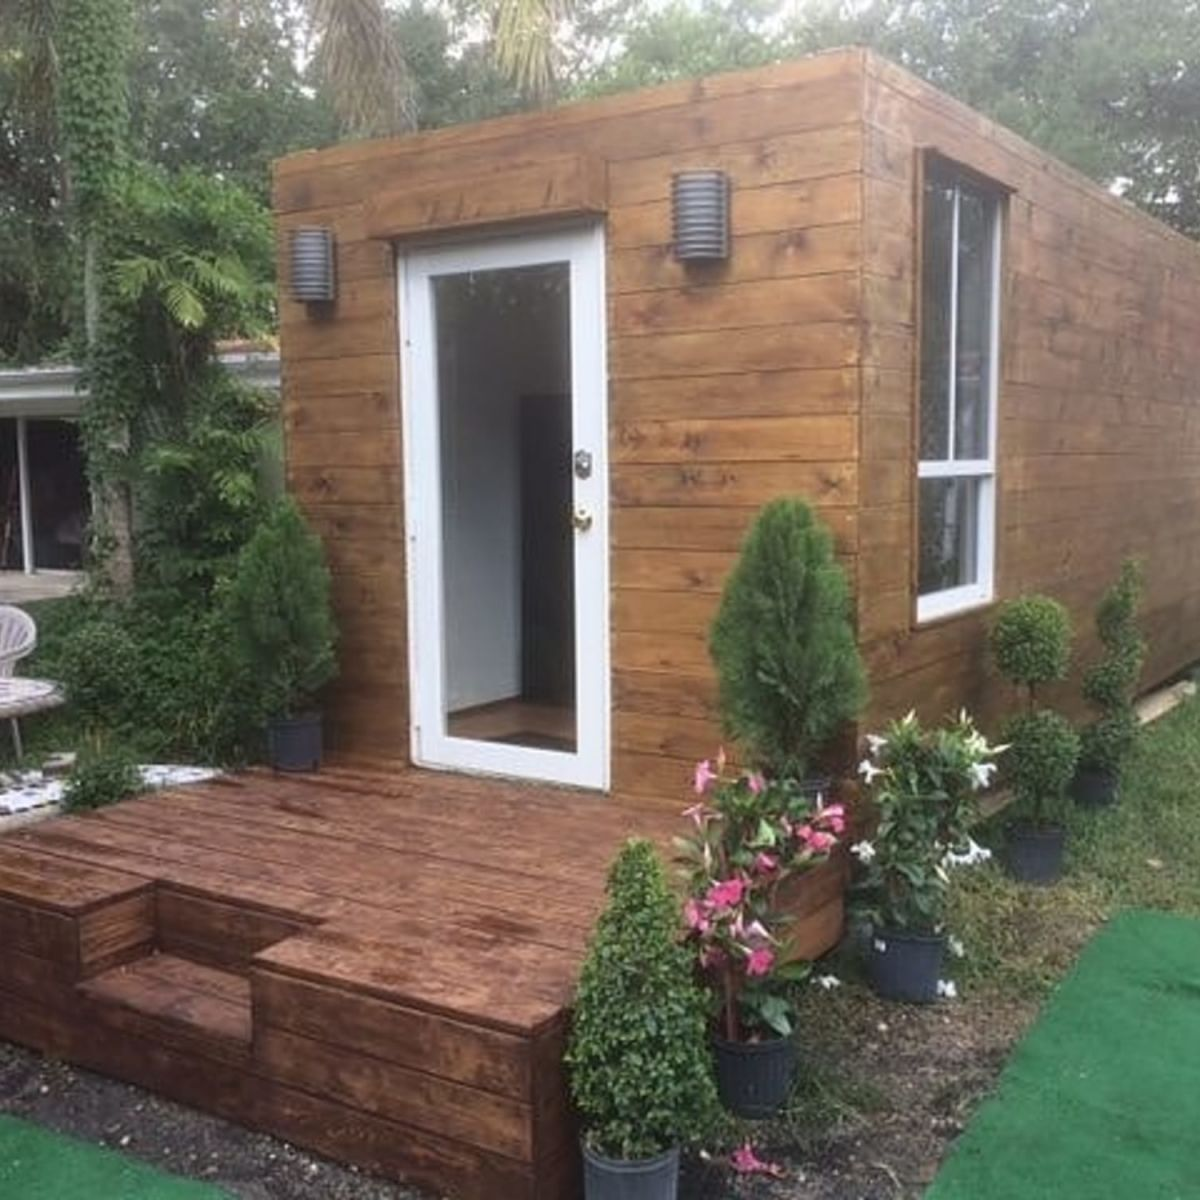 Small House For Rent: Tiny House For Rent In Miami